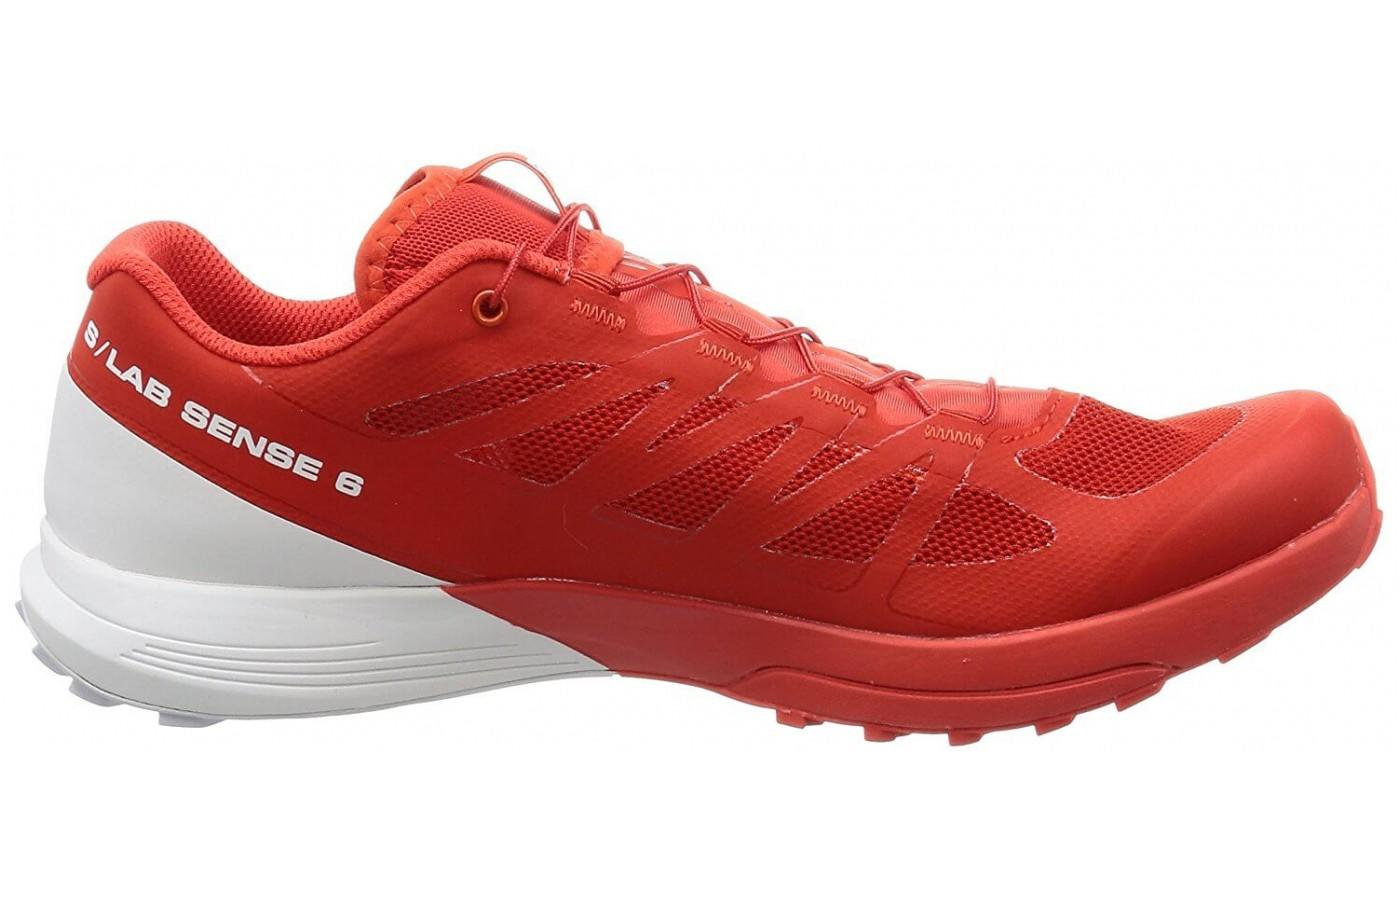 These Salomon trail shoes only come in one color scheme.